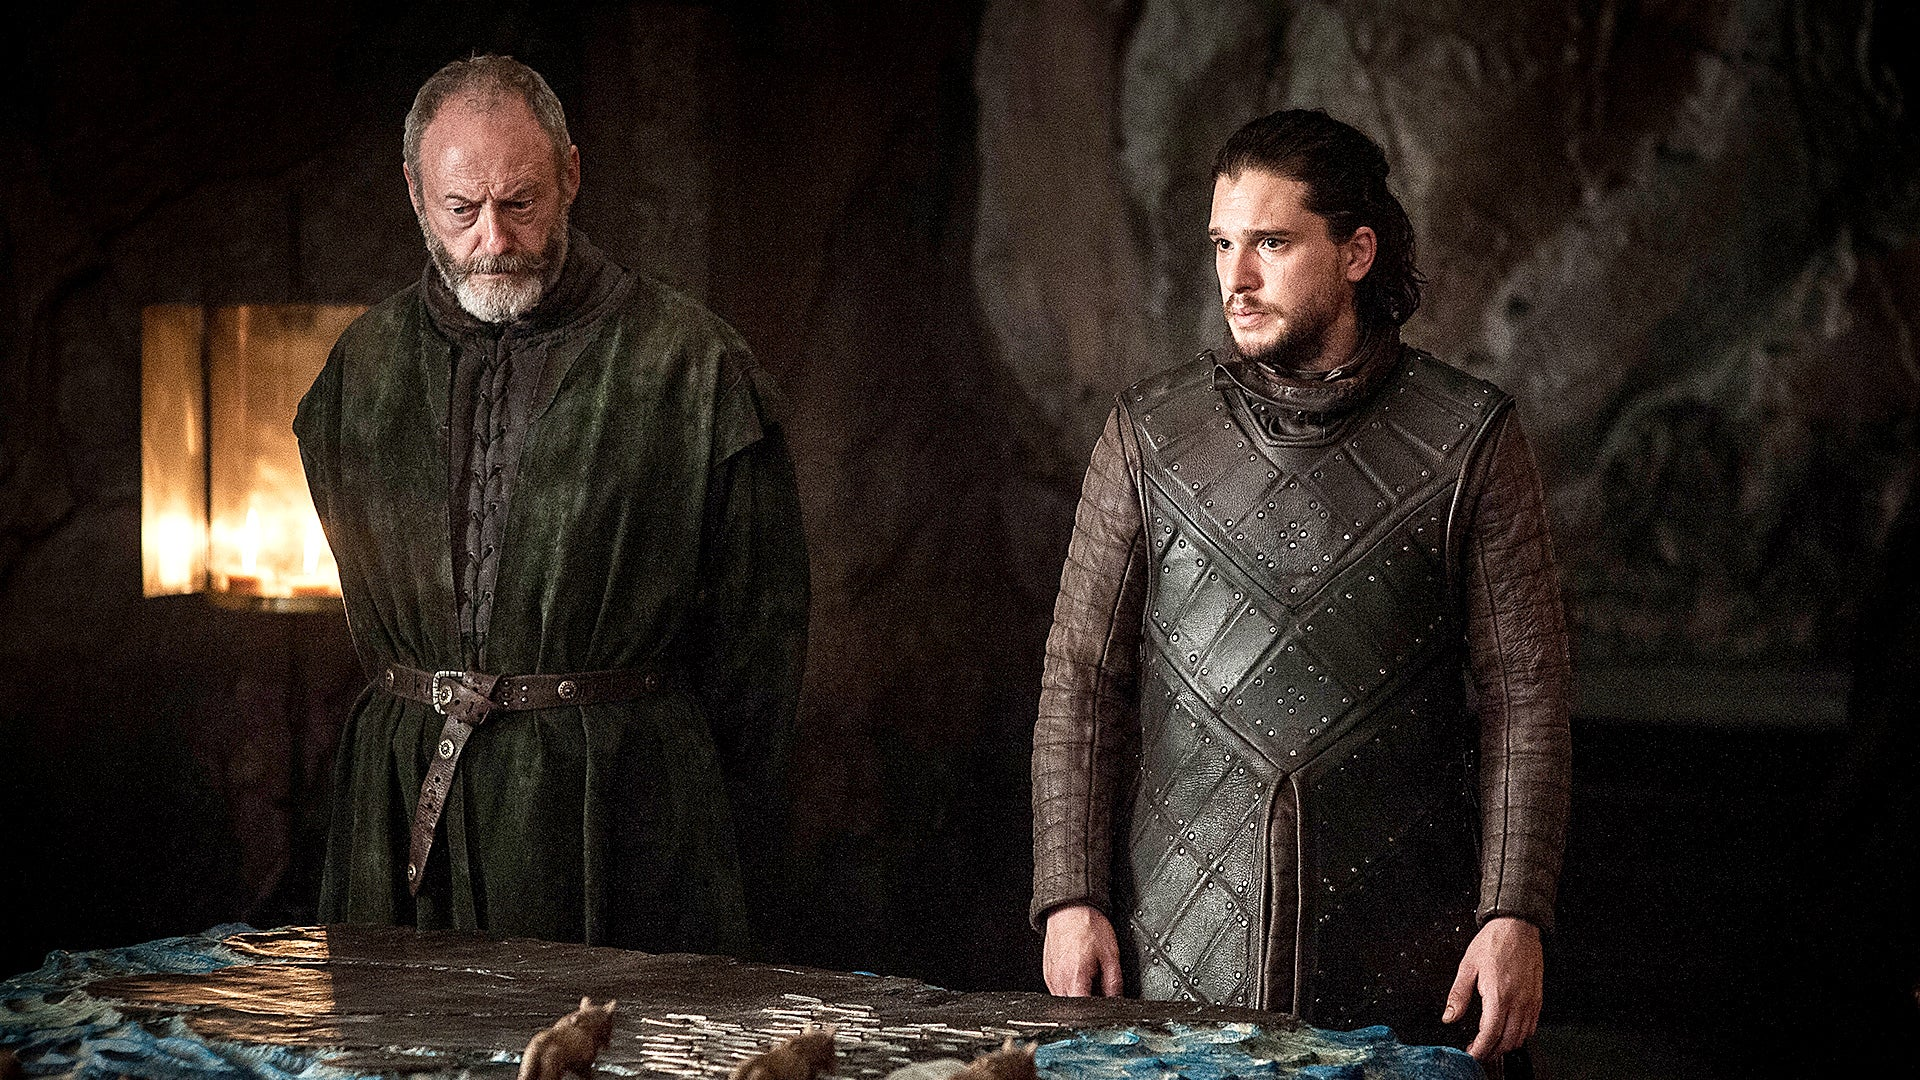 'Game of Thrones' is filming again way sooner than we thought